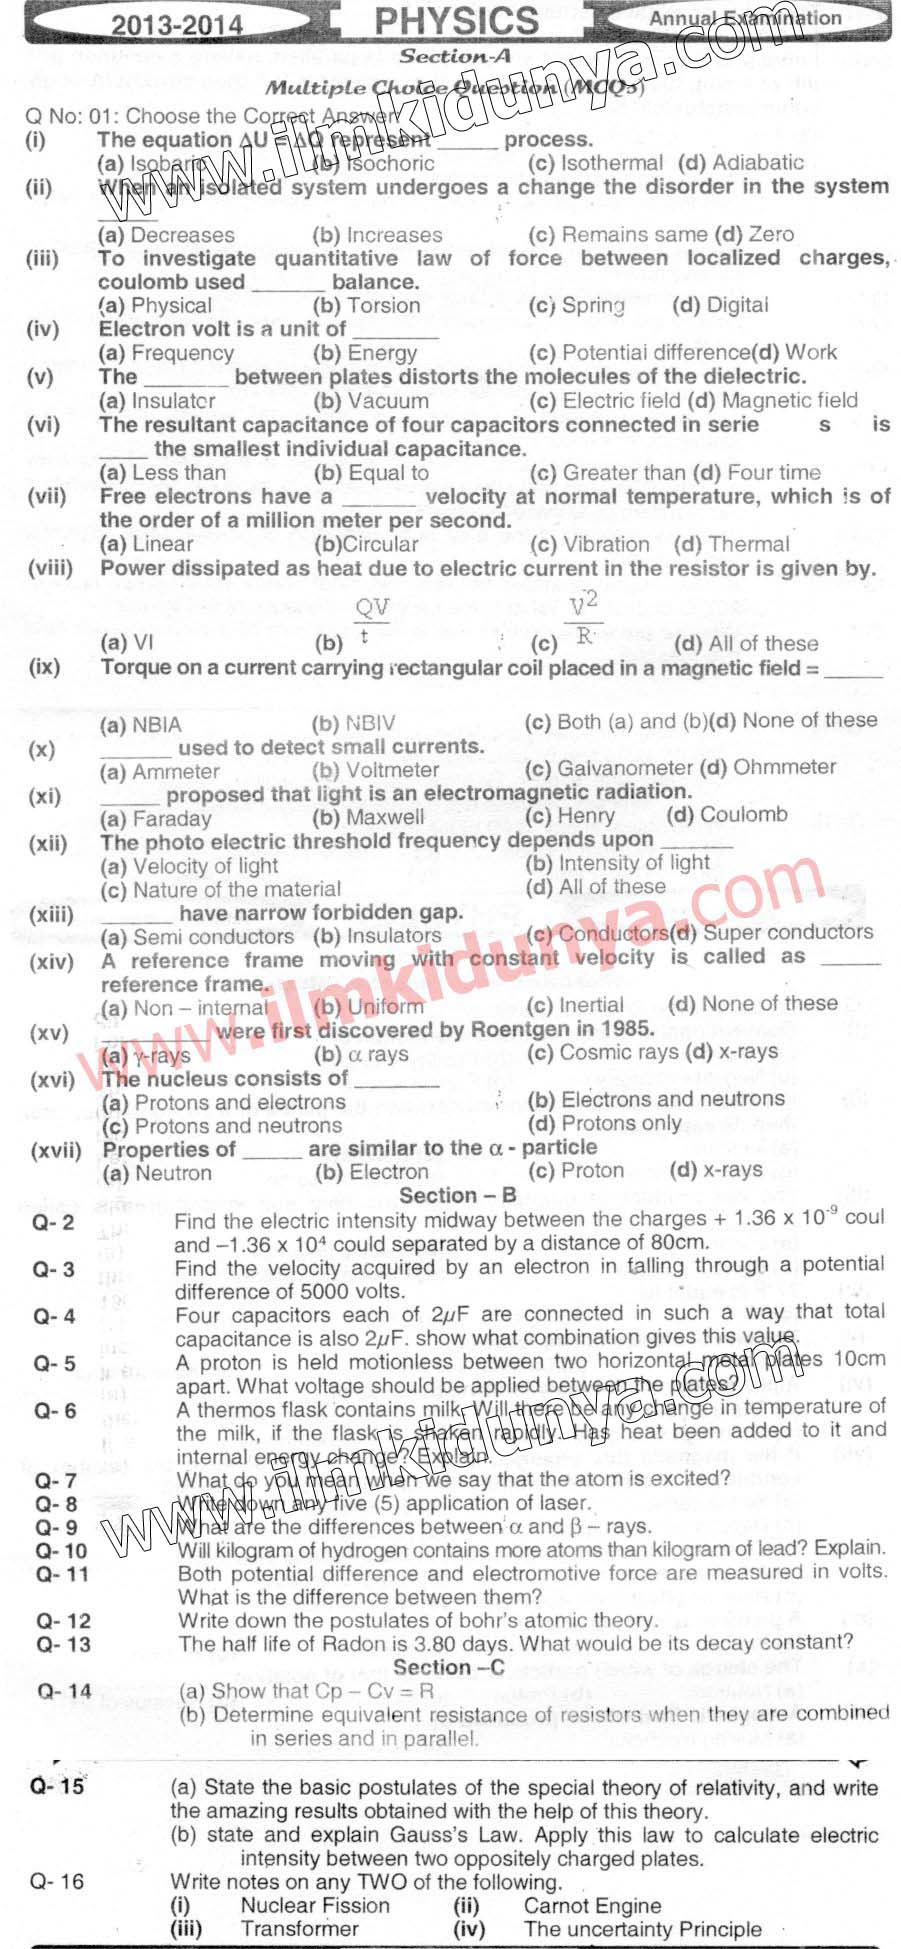 Past Papers 2014 Mirpurkhas Board Inter Part 2 Physics